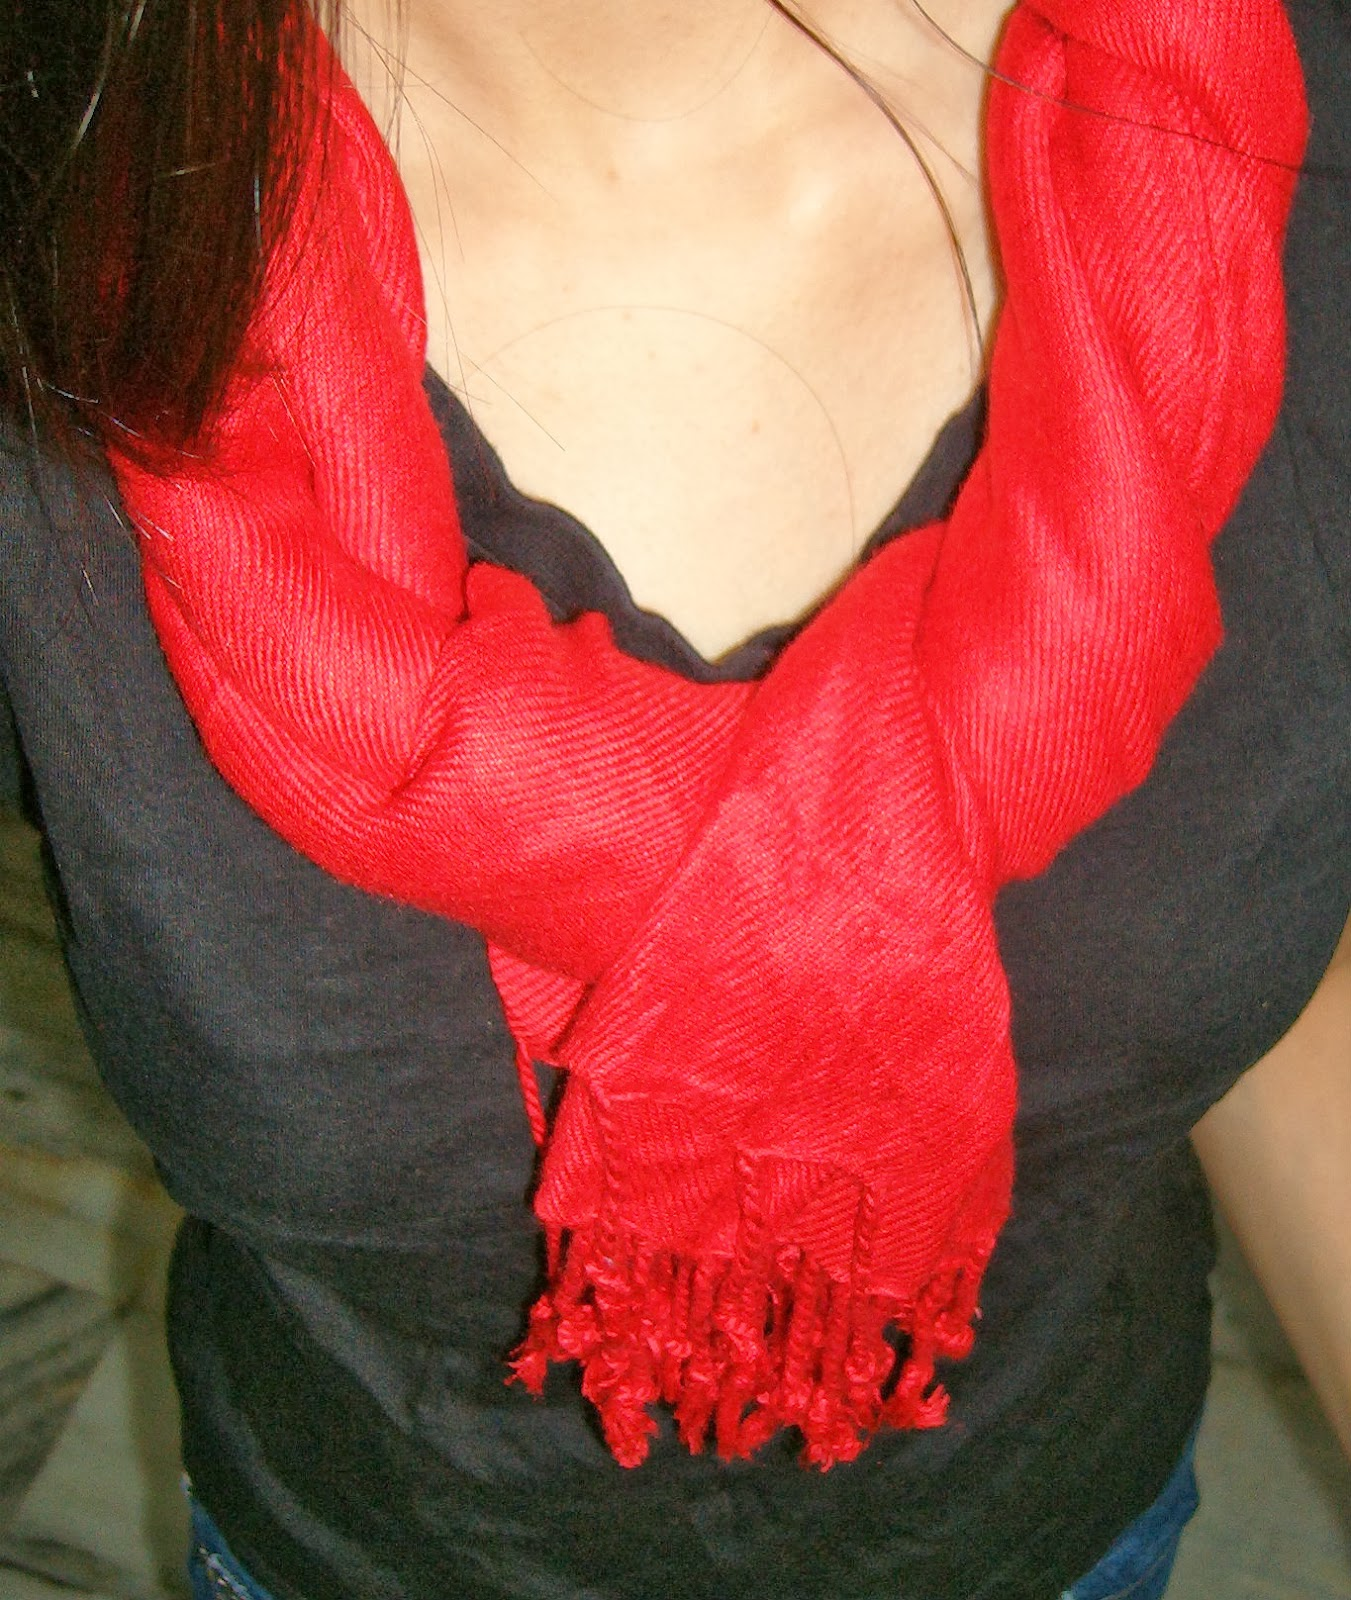 pashmina, how to wear scarves in india, how to wear pashminas, red scarf, double know in scarves